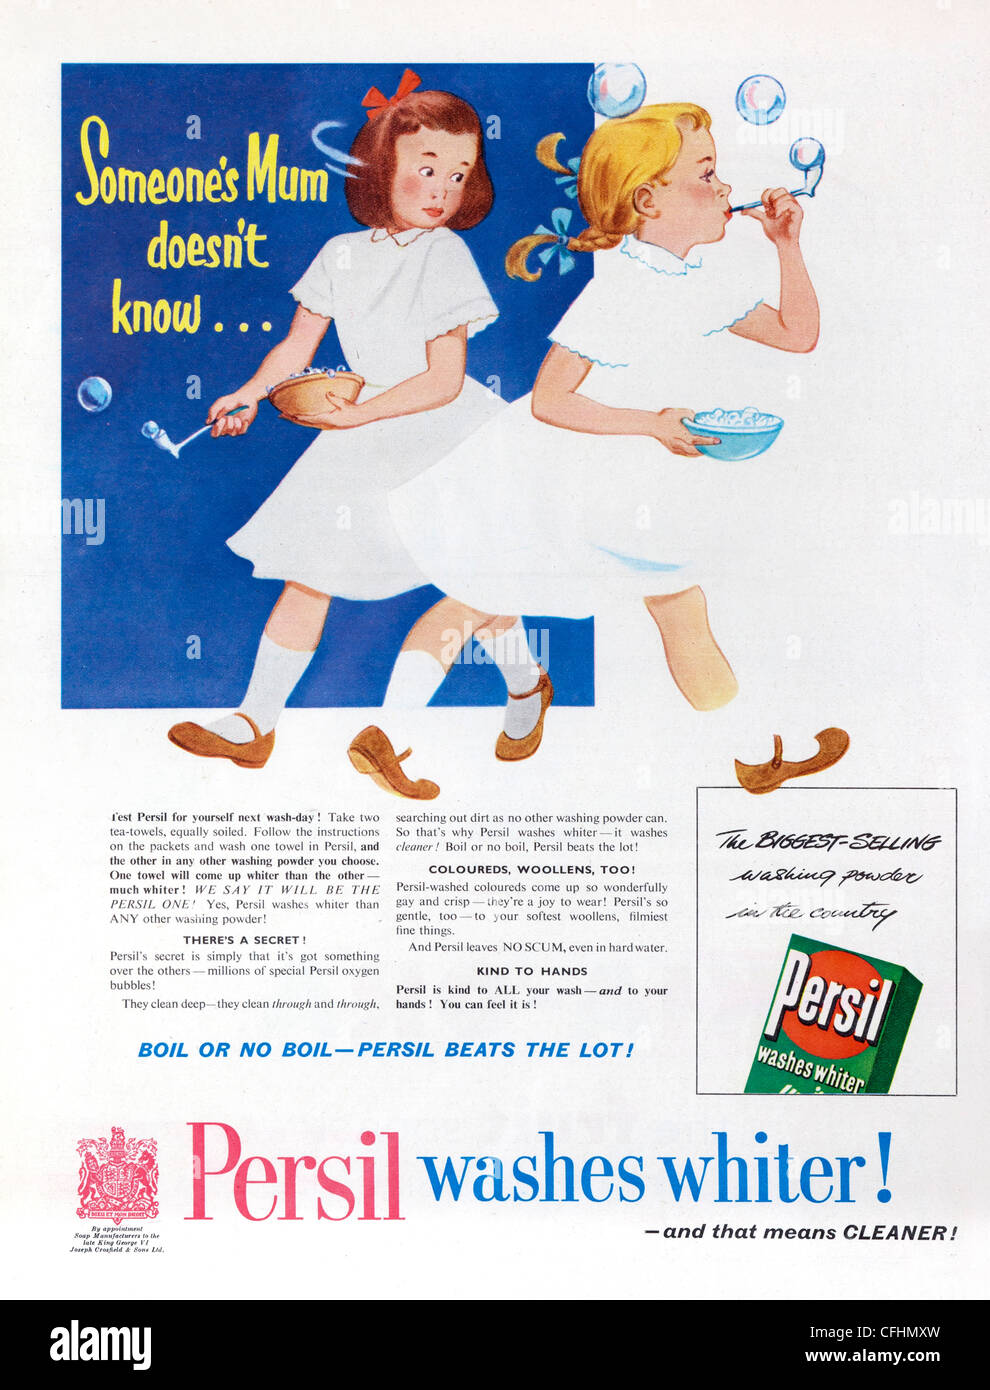 Persil washing powder advert from 1954, marketed by both Henkel AG and Unilever - Stock Image